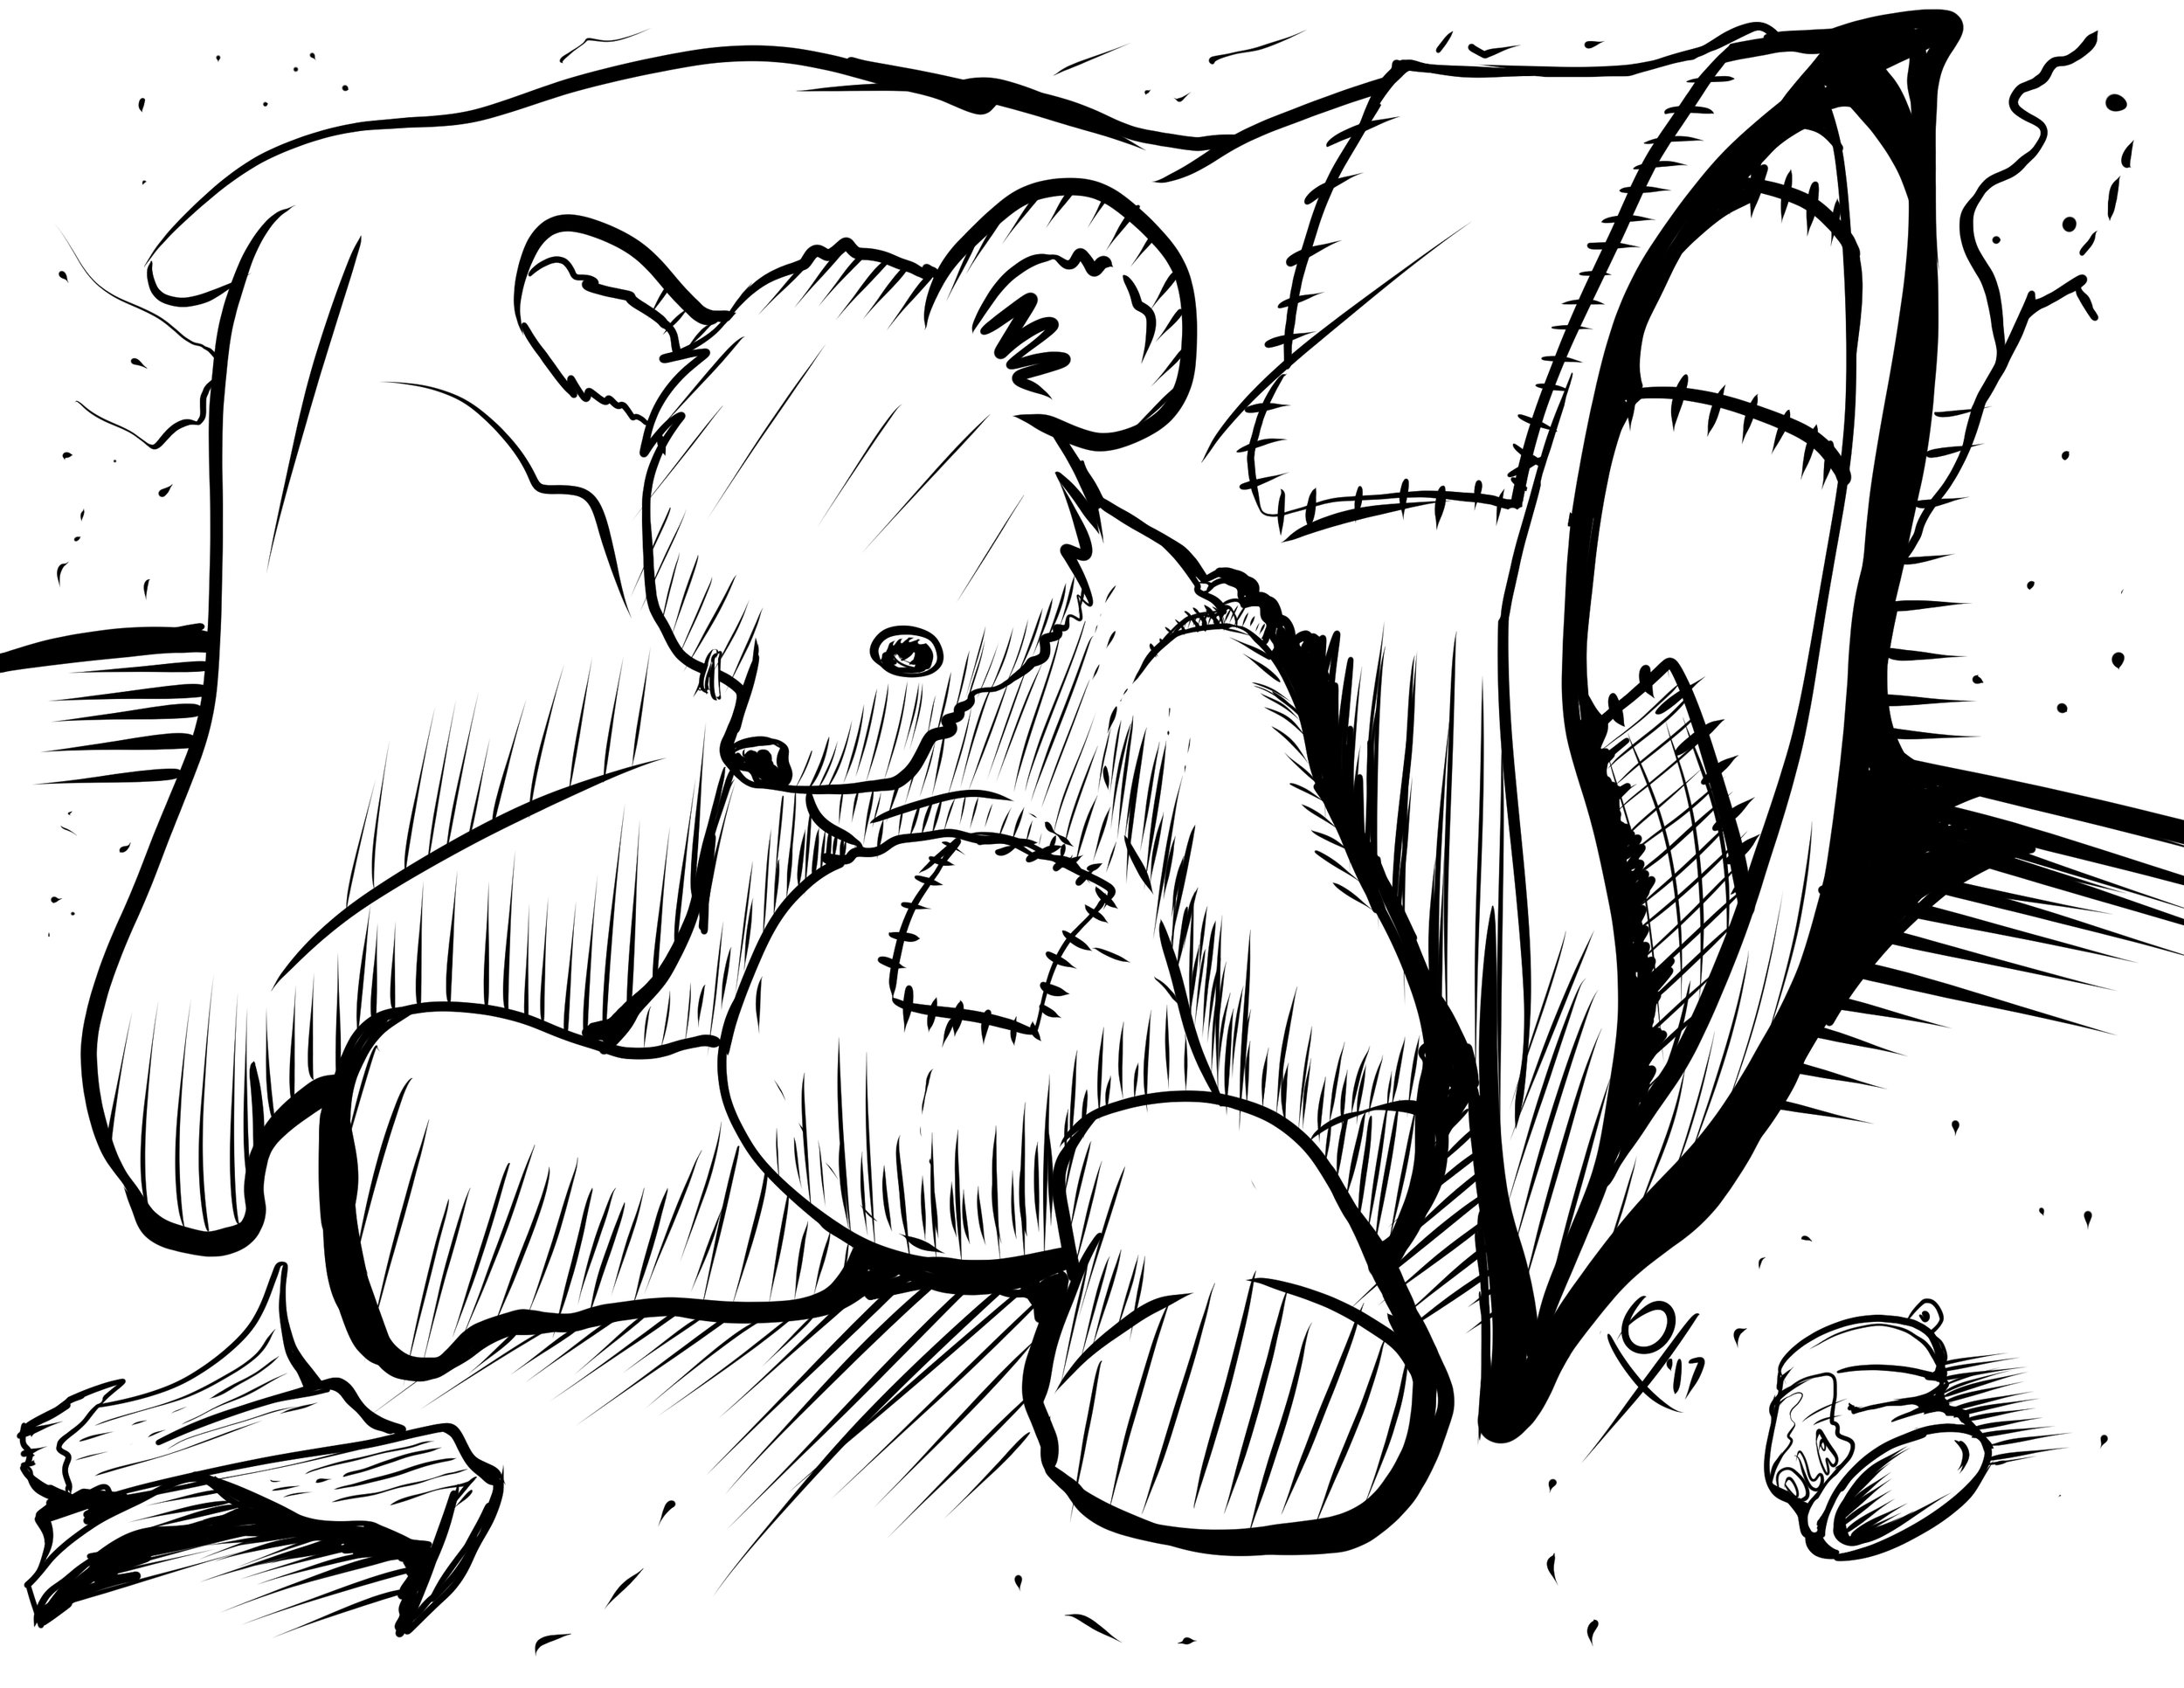 149-Patched Pillow w Teddy Bear.jpg